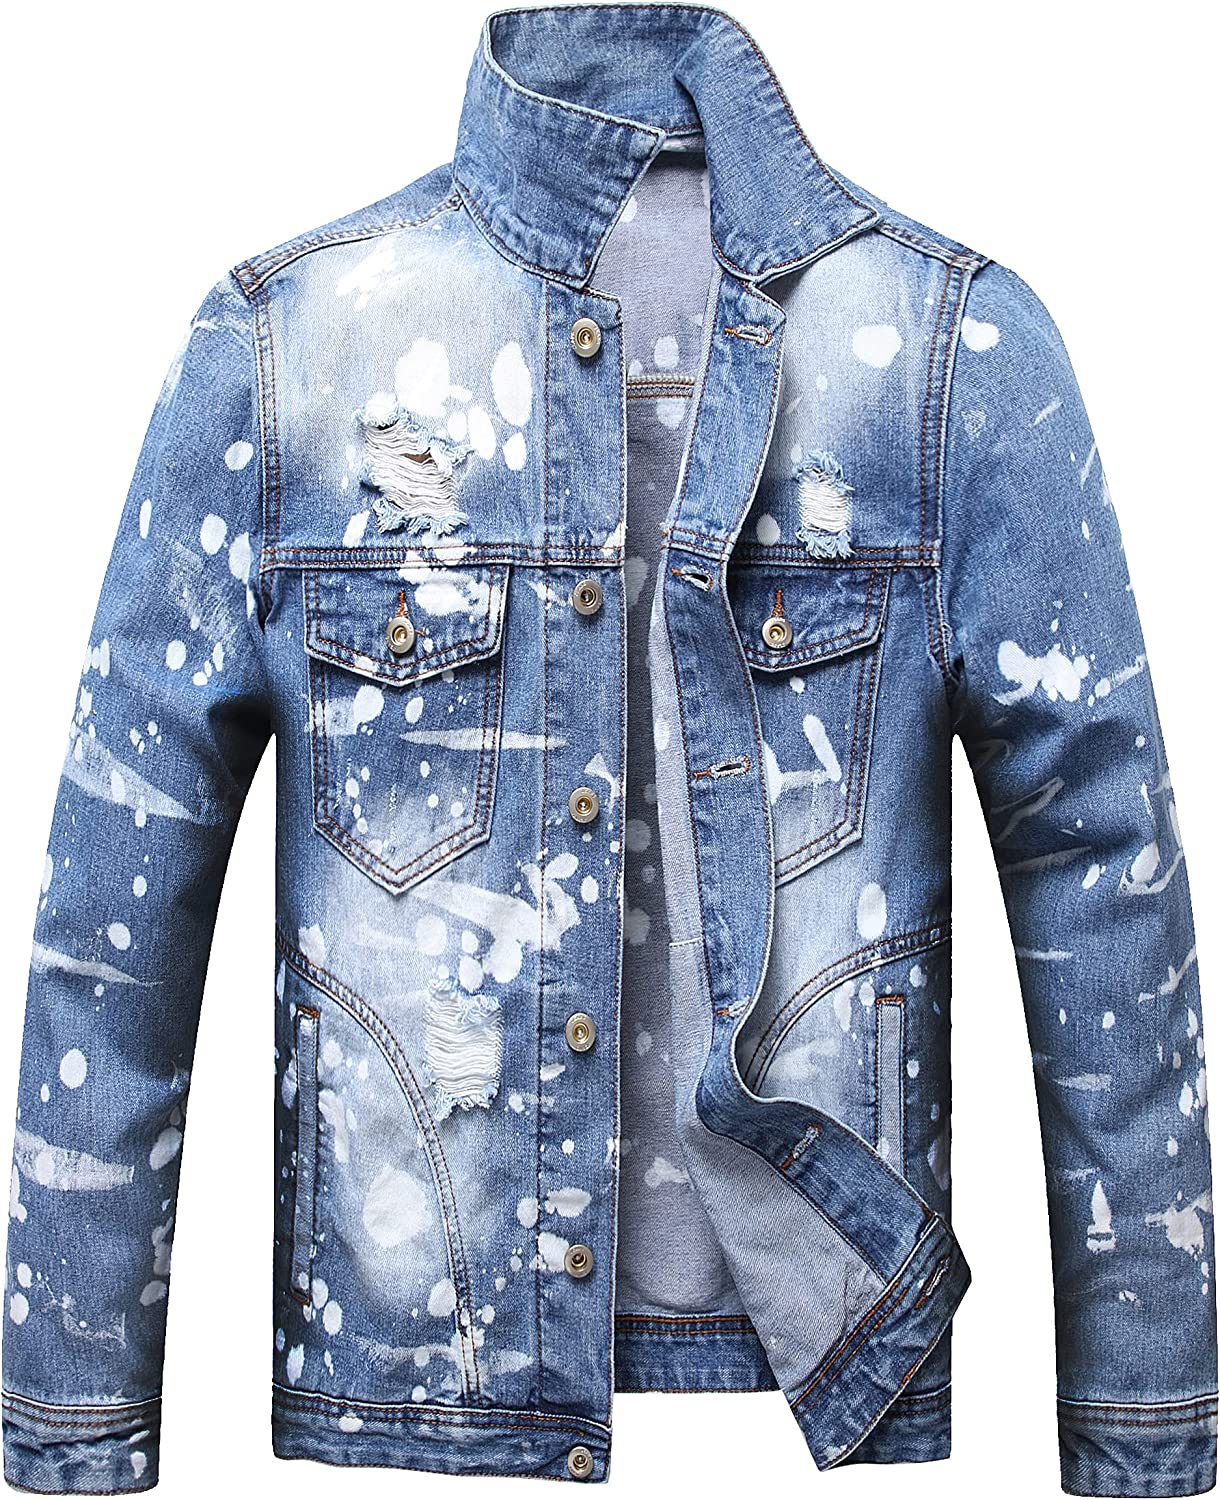 LUCKAMILEE Jean Jacket for Men Dallas Mall Ripped D Distressed Trucker Direct sale of manufacturer Loose